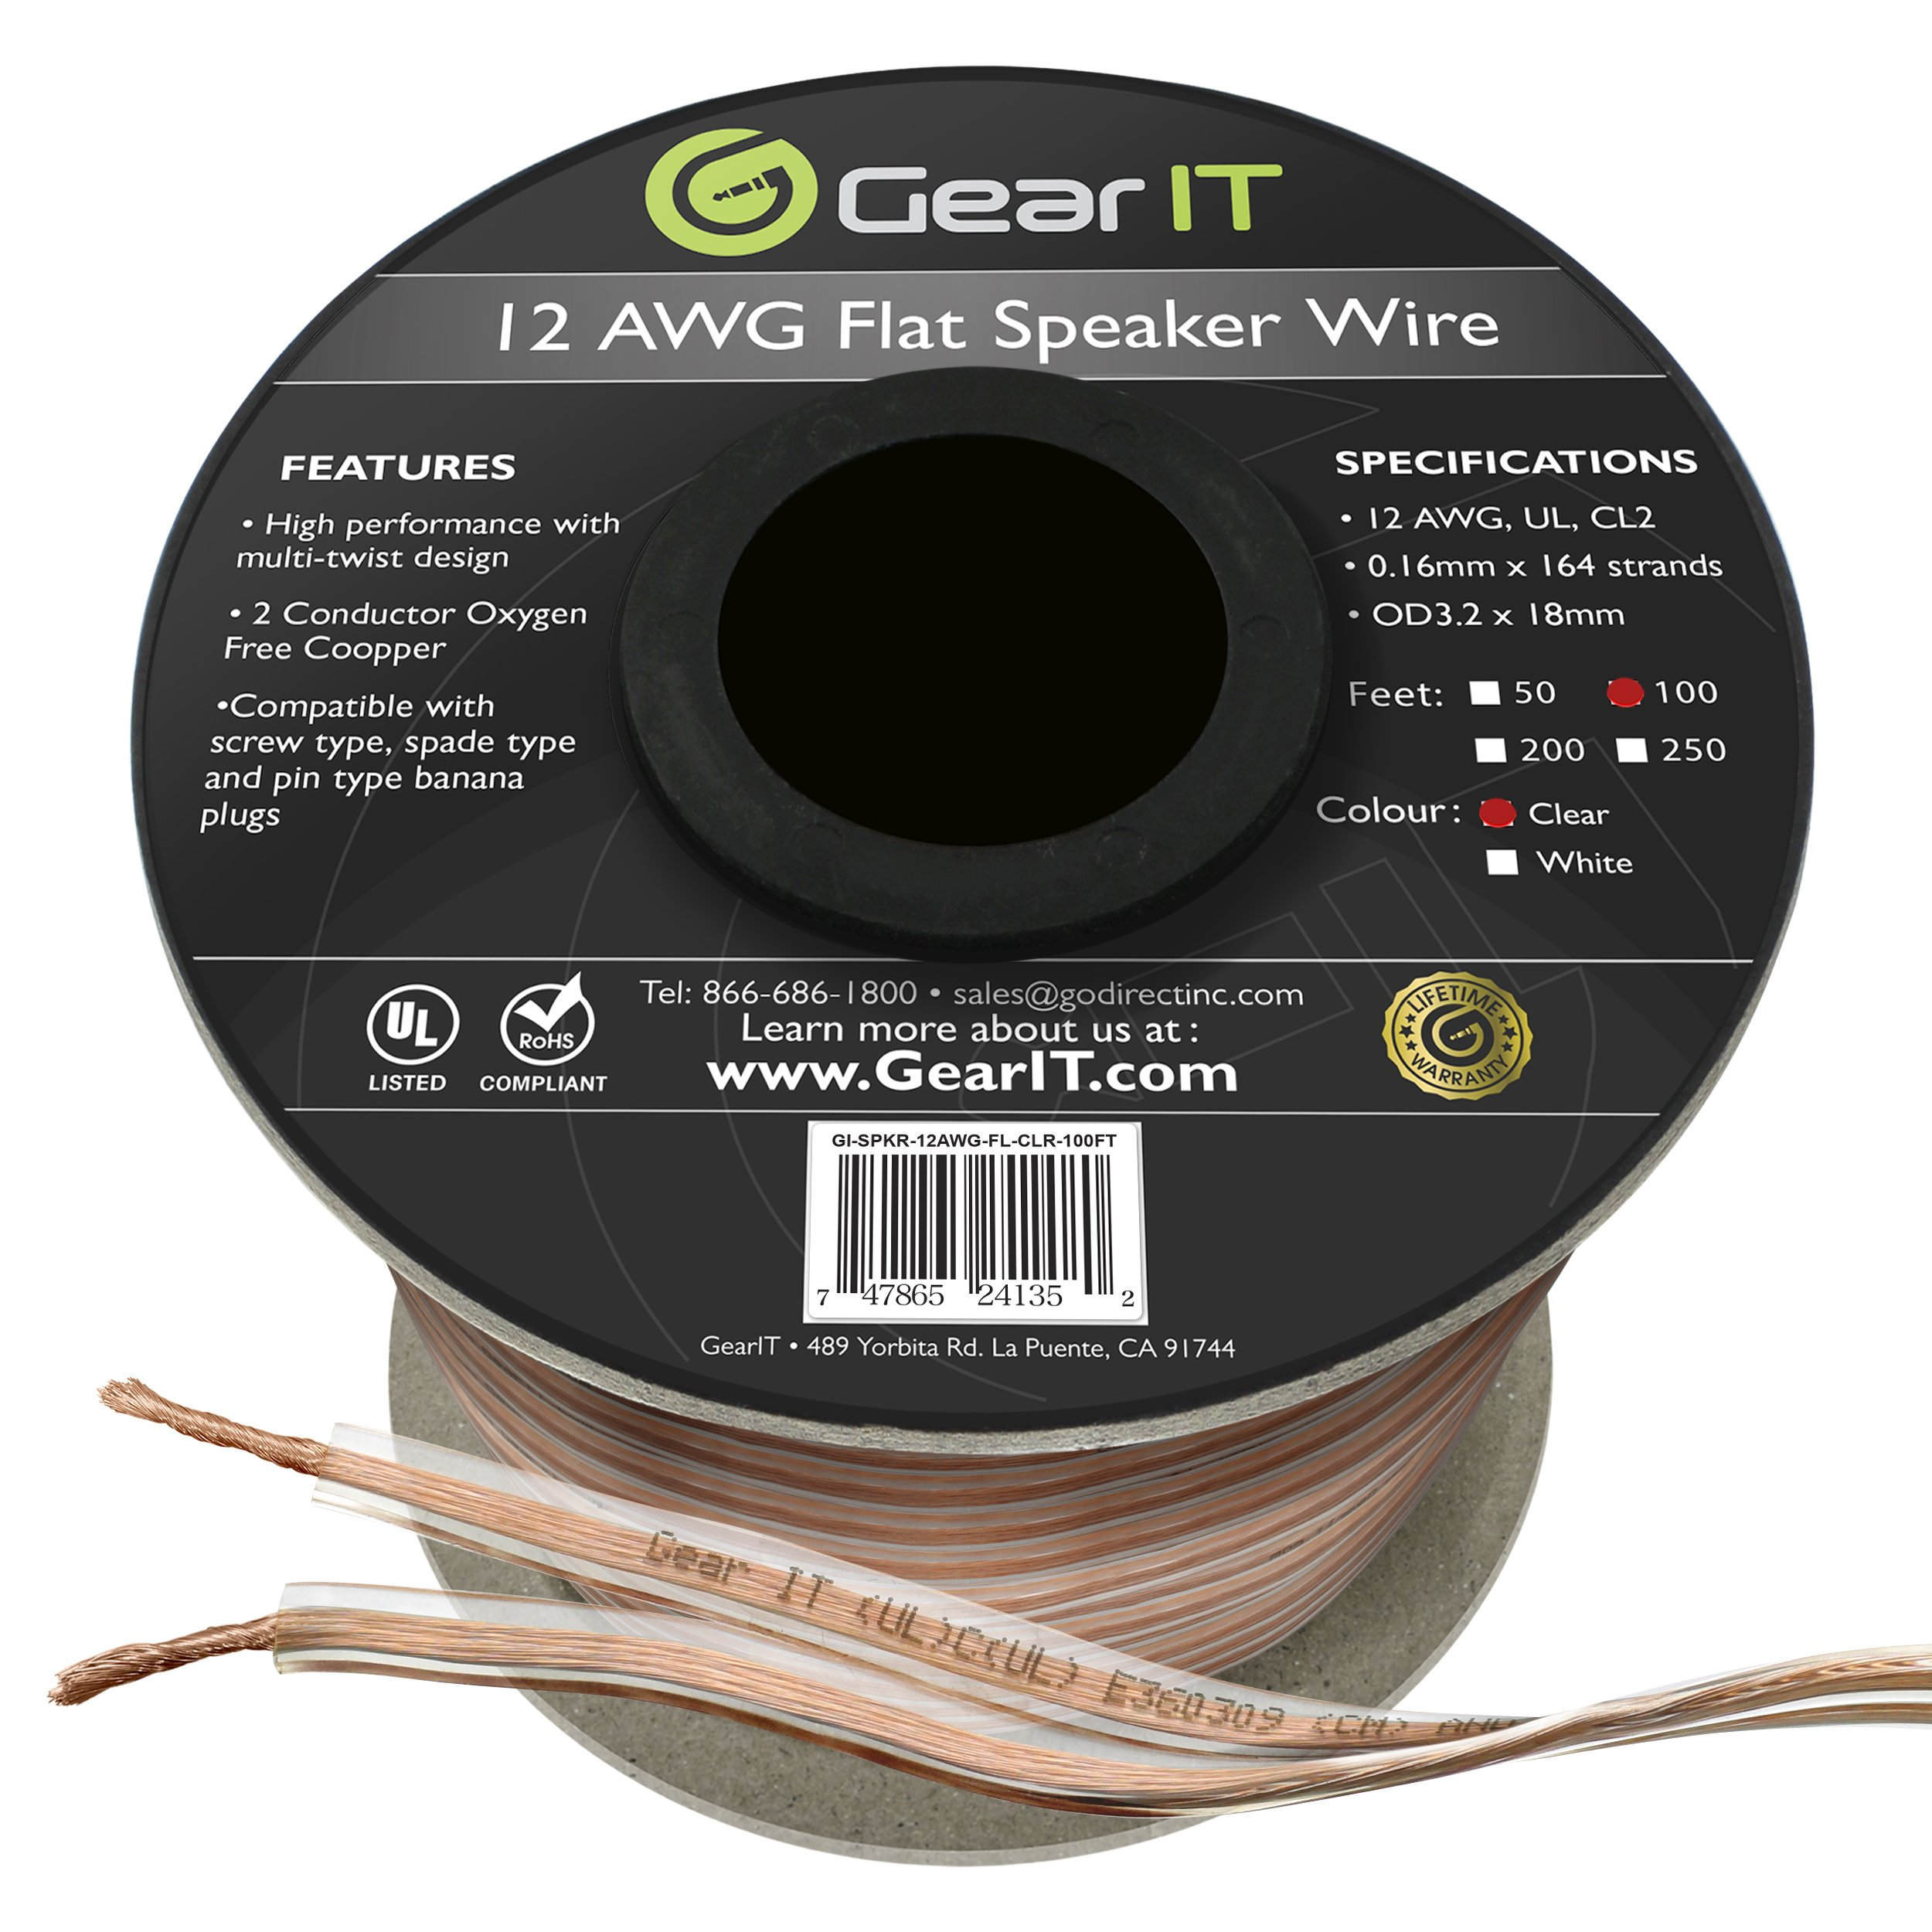 GearIT Elite Series 12AWG Flat Speaker Wire (100 Feet/30.4 Meters) - Oxygen Free Copper (OFC) CL2 Rated In-Wall Installation for Home Theater, Car Audio, and Outdoor Use, Clear by GearIT